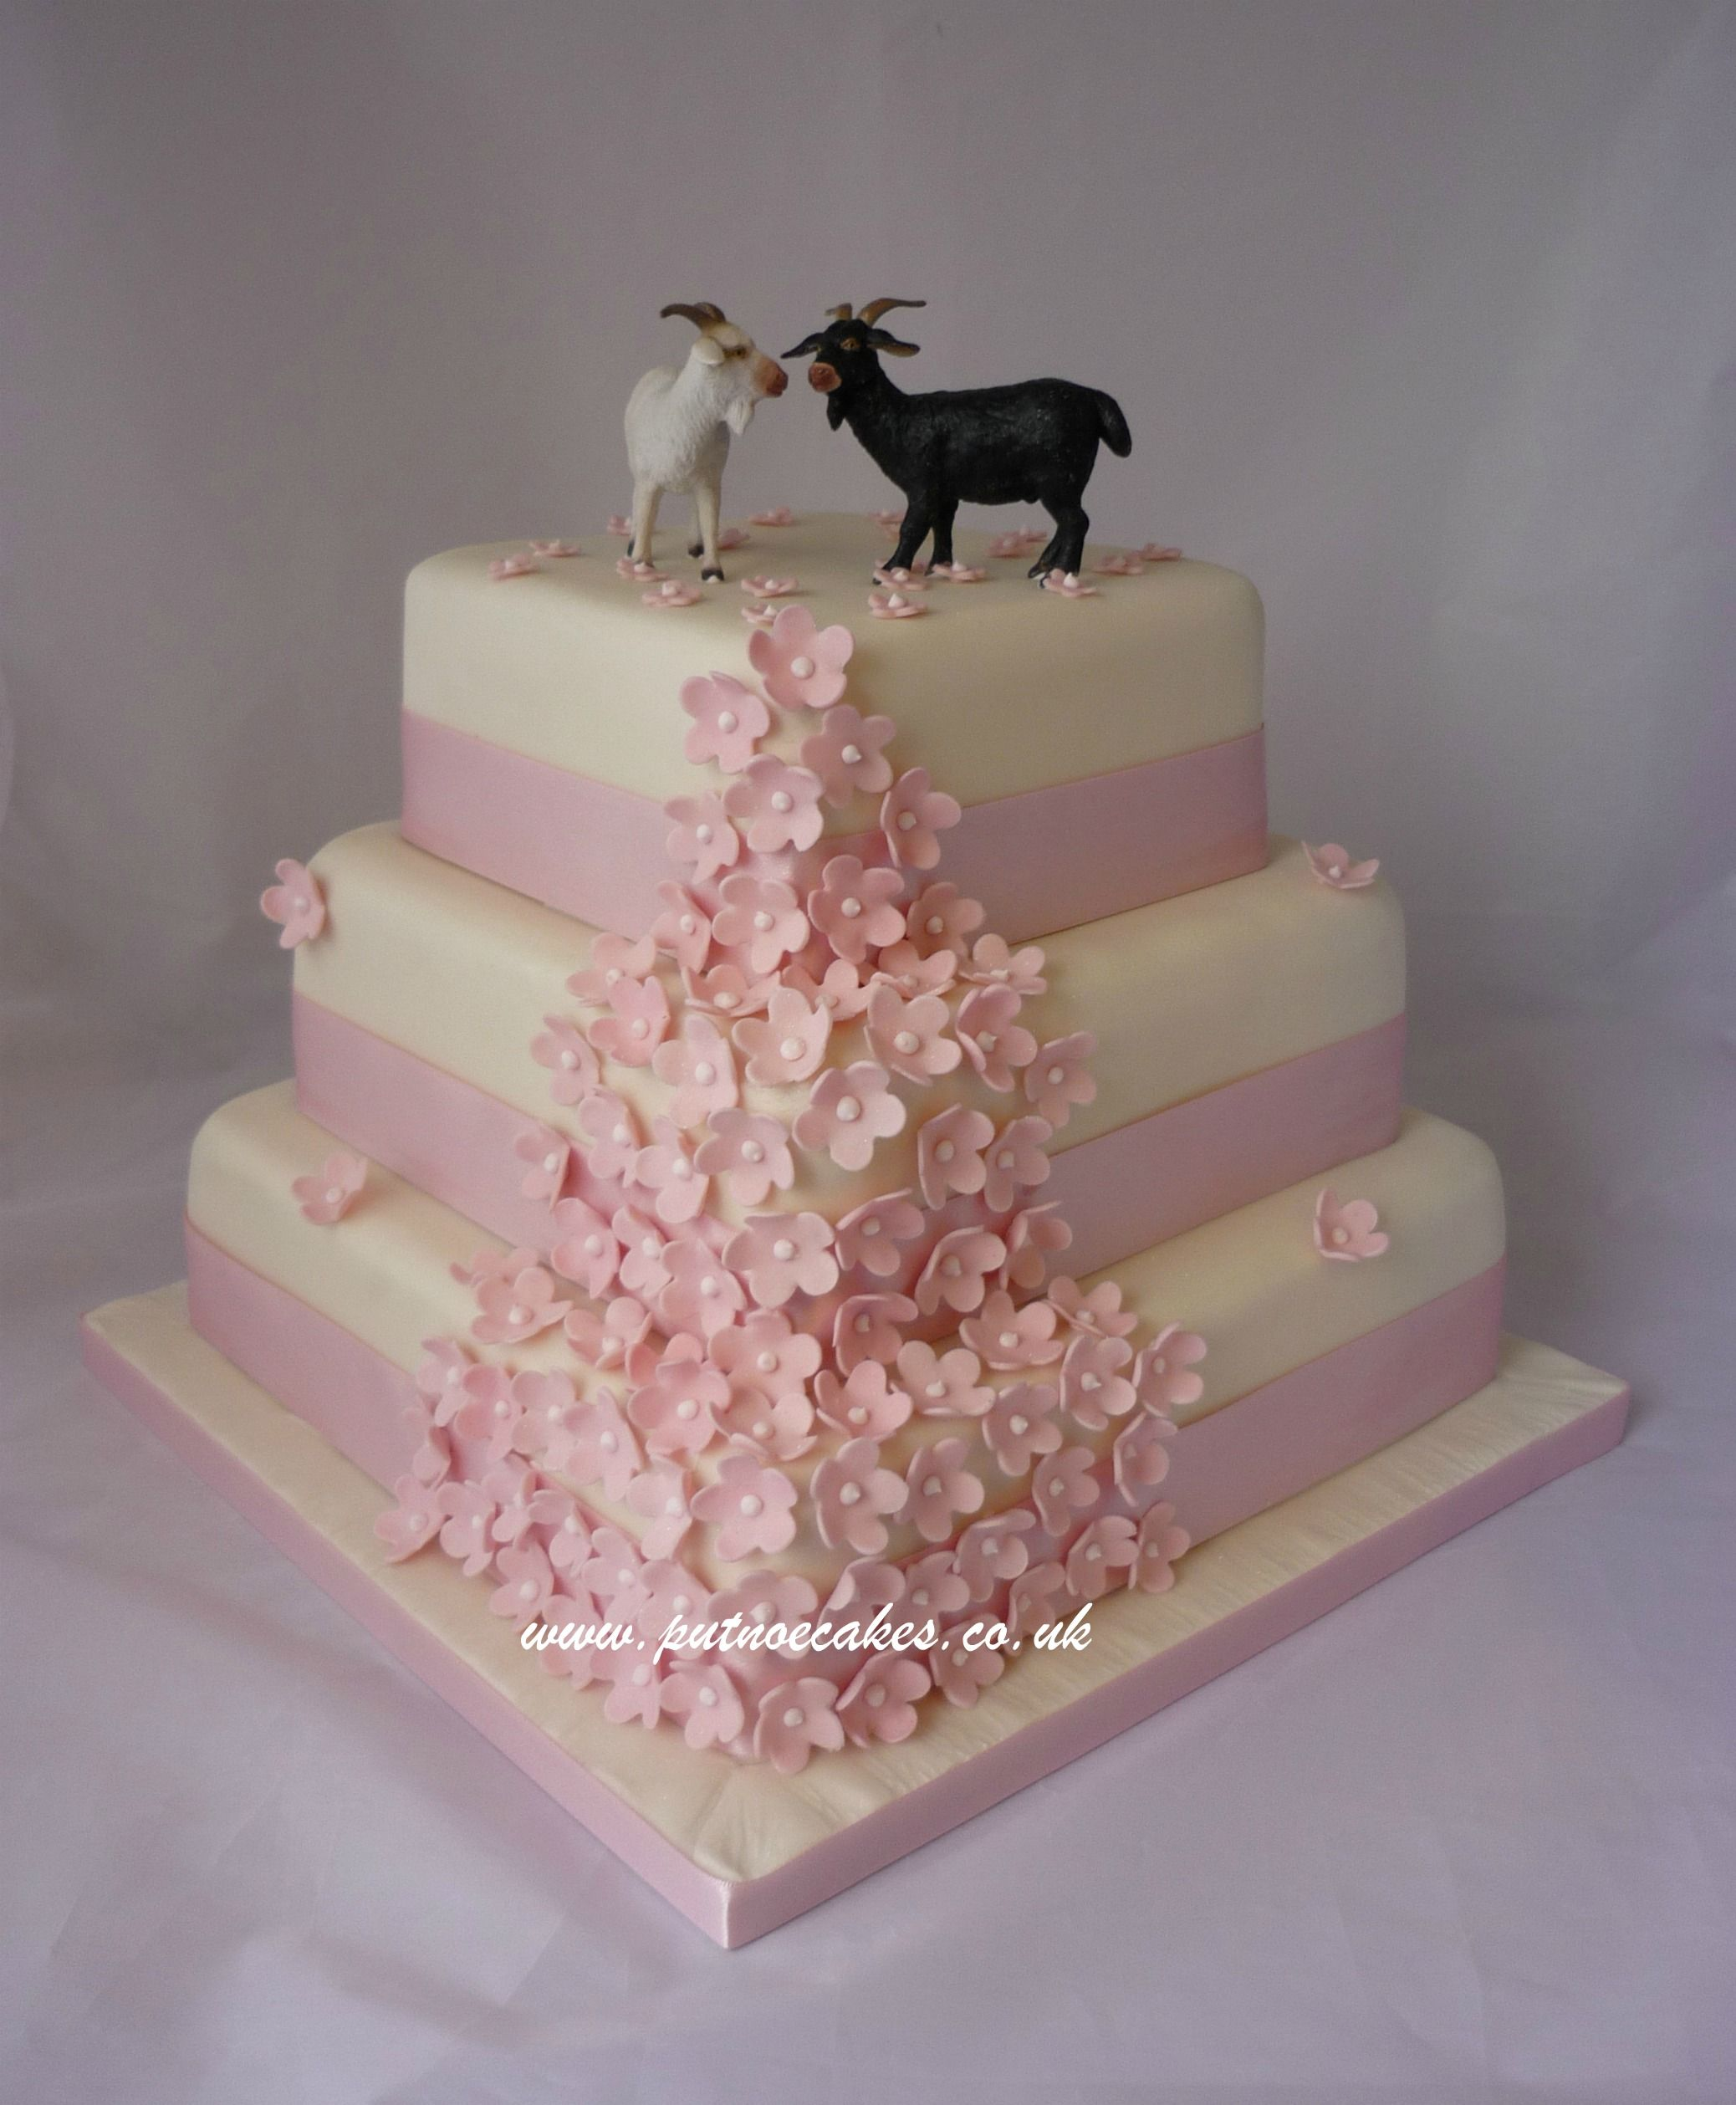 White wedding cake with pale pink blossoms, topper off by